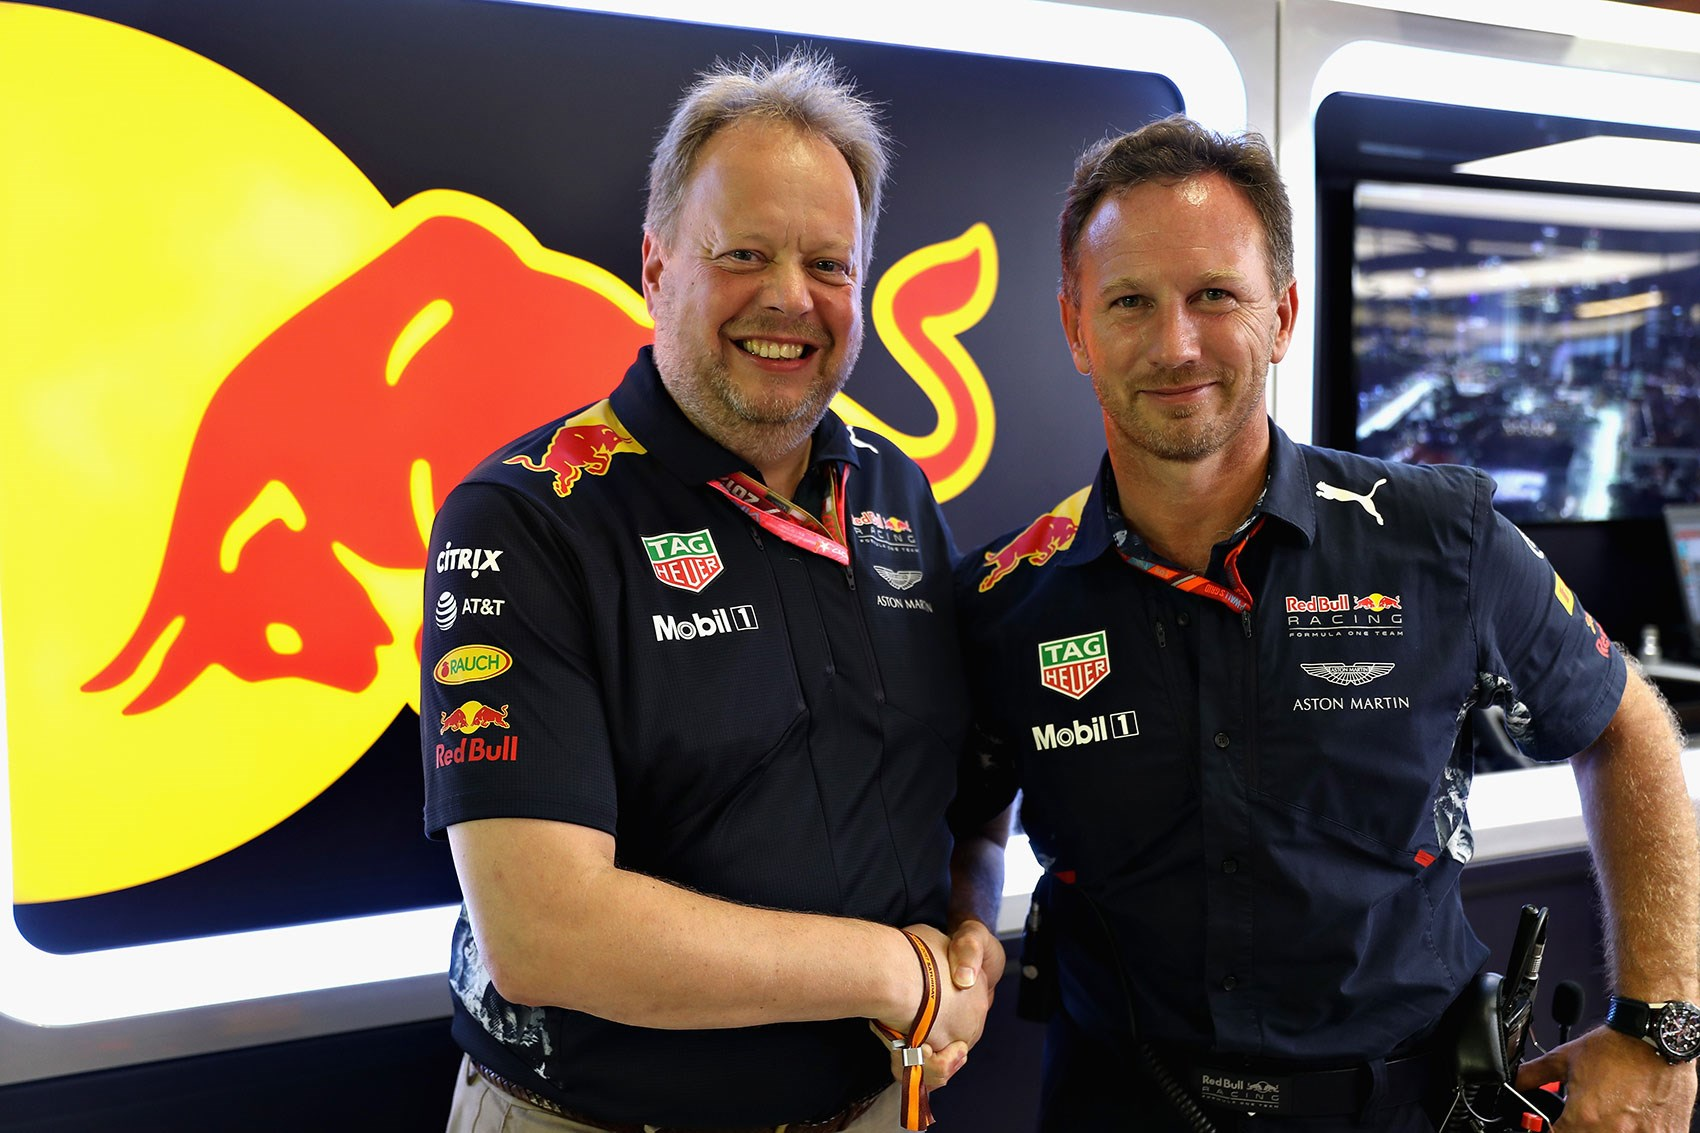 Aston Martin to become title sponsor of F1 team Red Bull